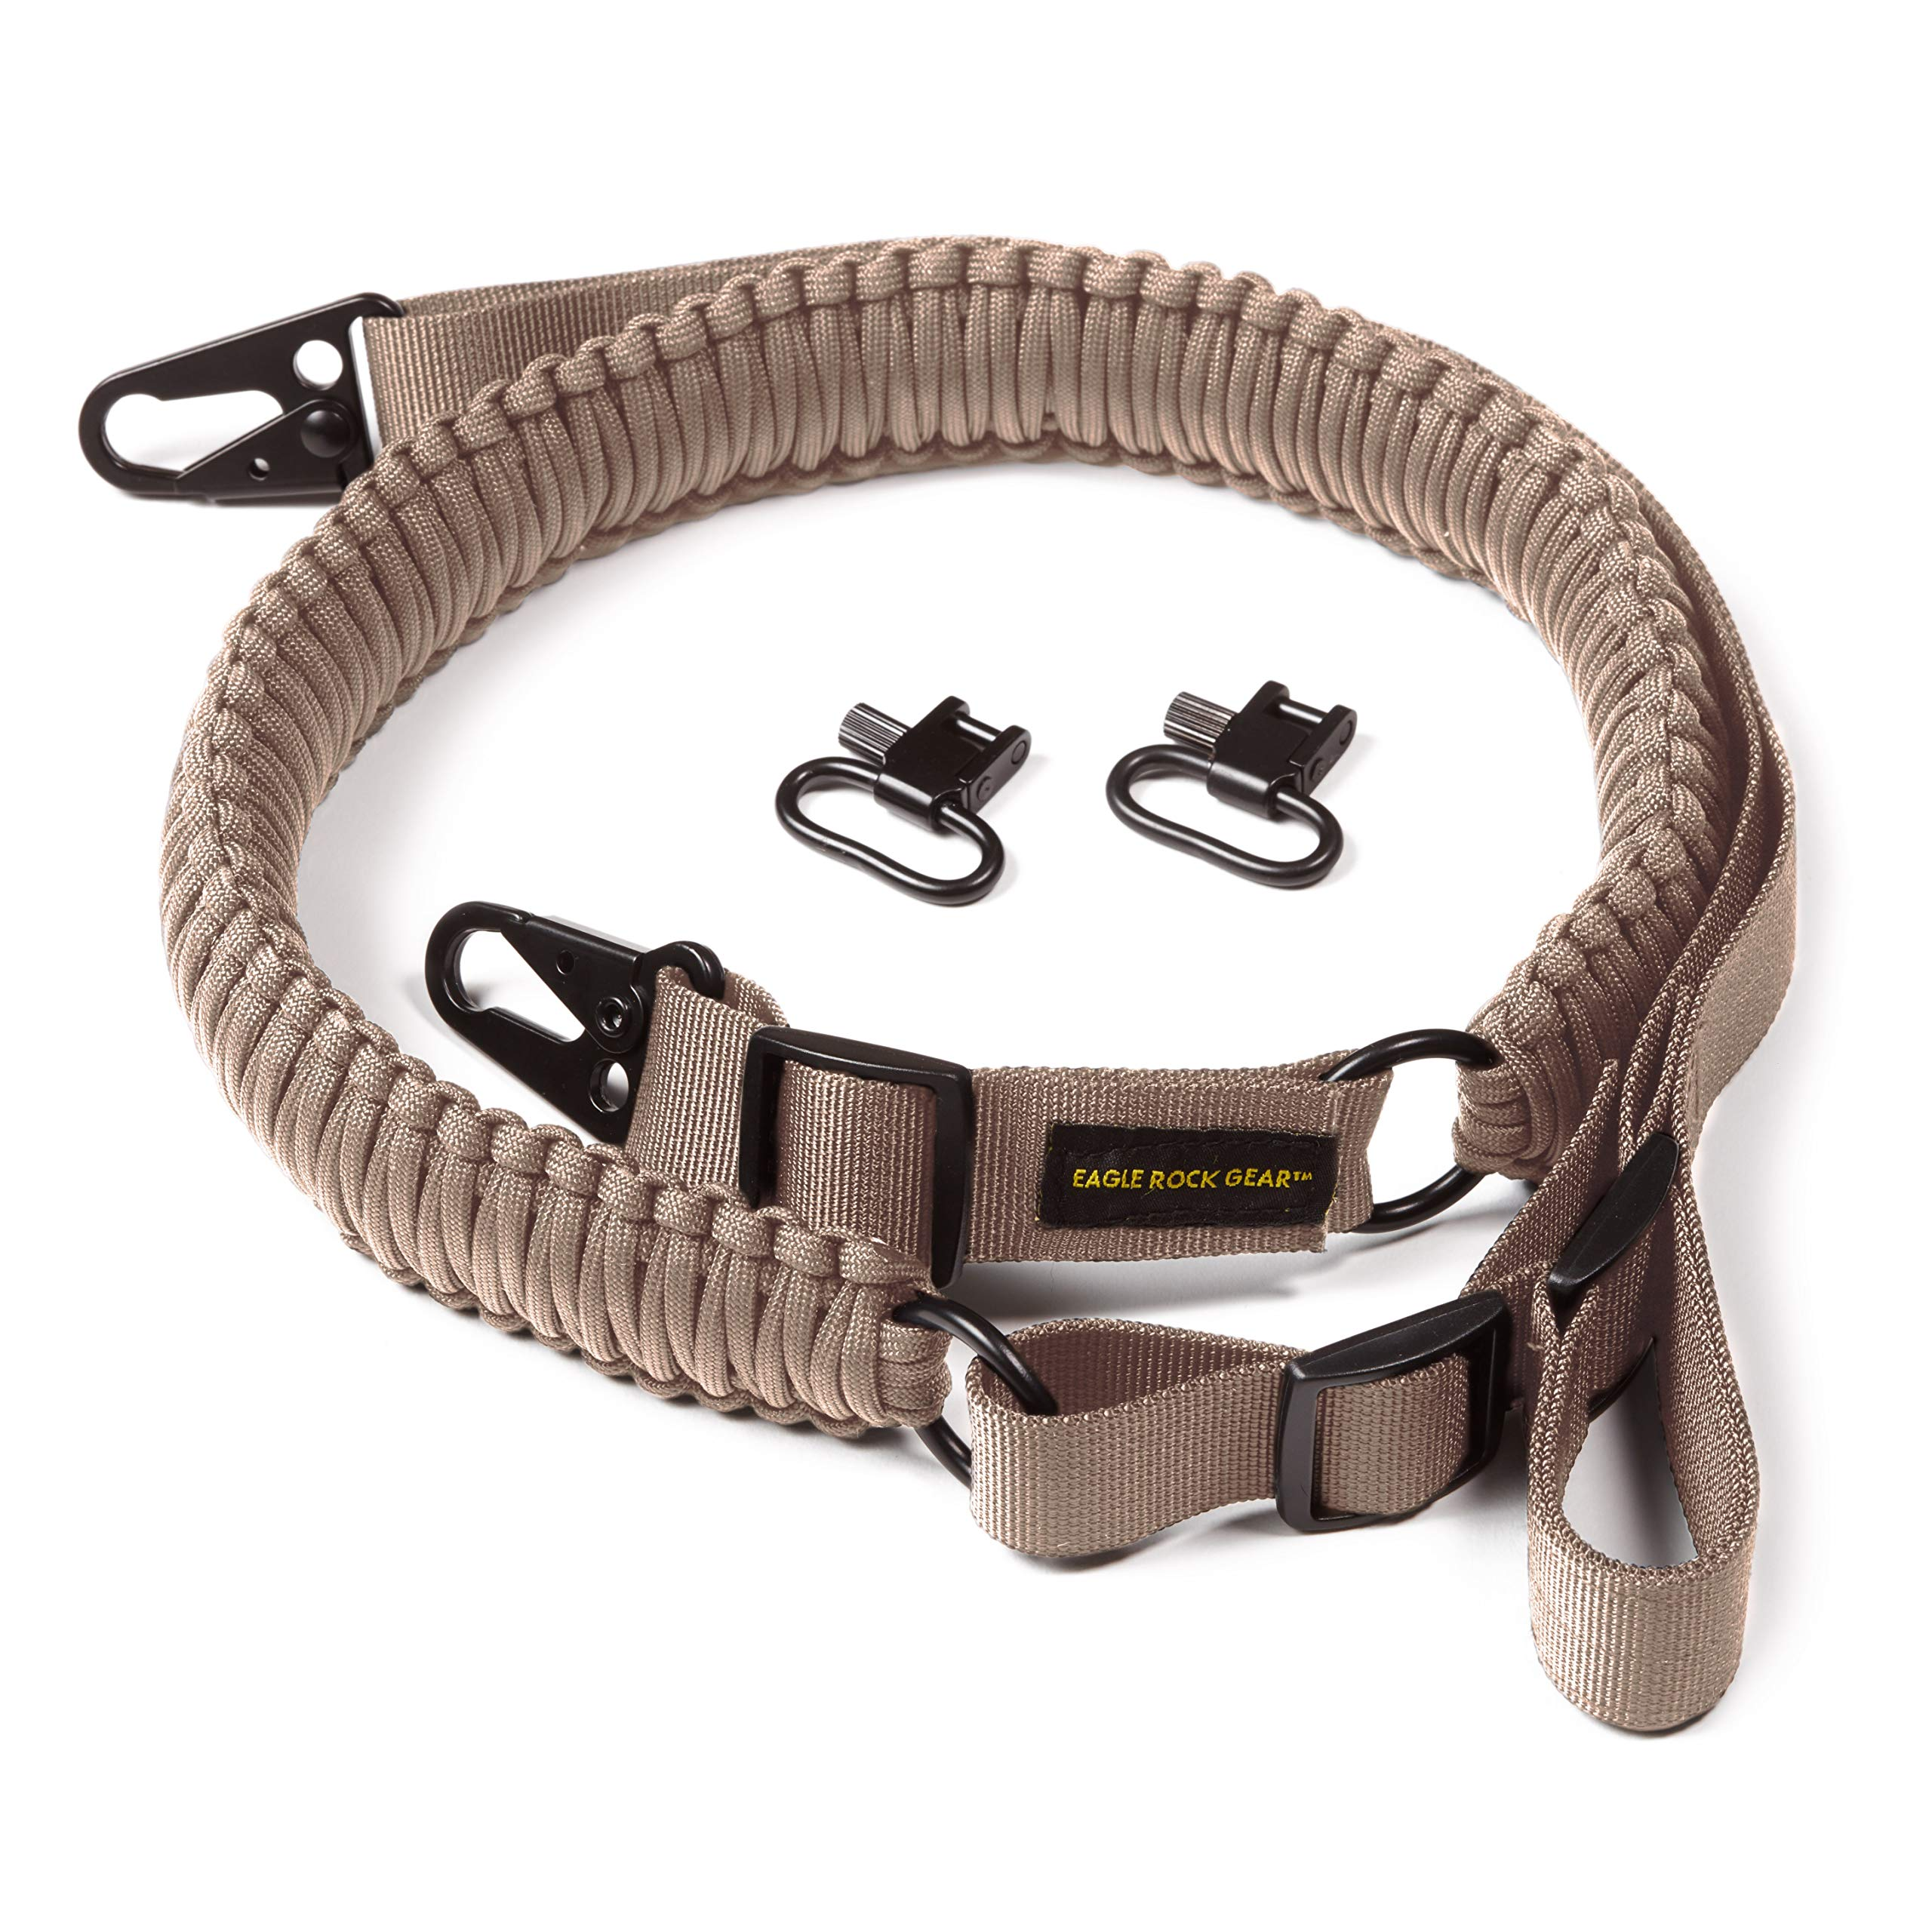 Eagle Rock Gear 550 Paracord 2 Point Gun Sling for Rifles, Shotguns, Crossbows, Airsoft, with Easy Adjustable Strap, HK Clips, Swivels, US Patent Pending (Desert Tan) by Eagle Rock Gear